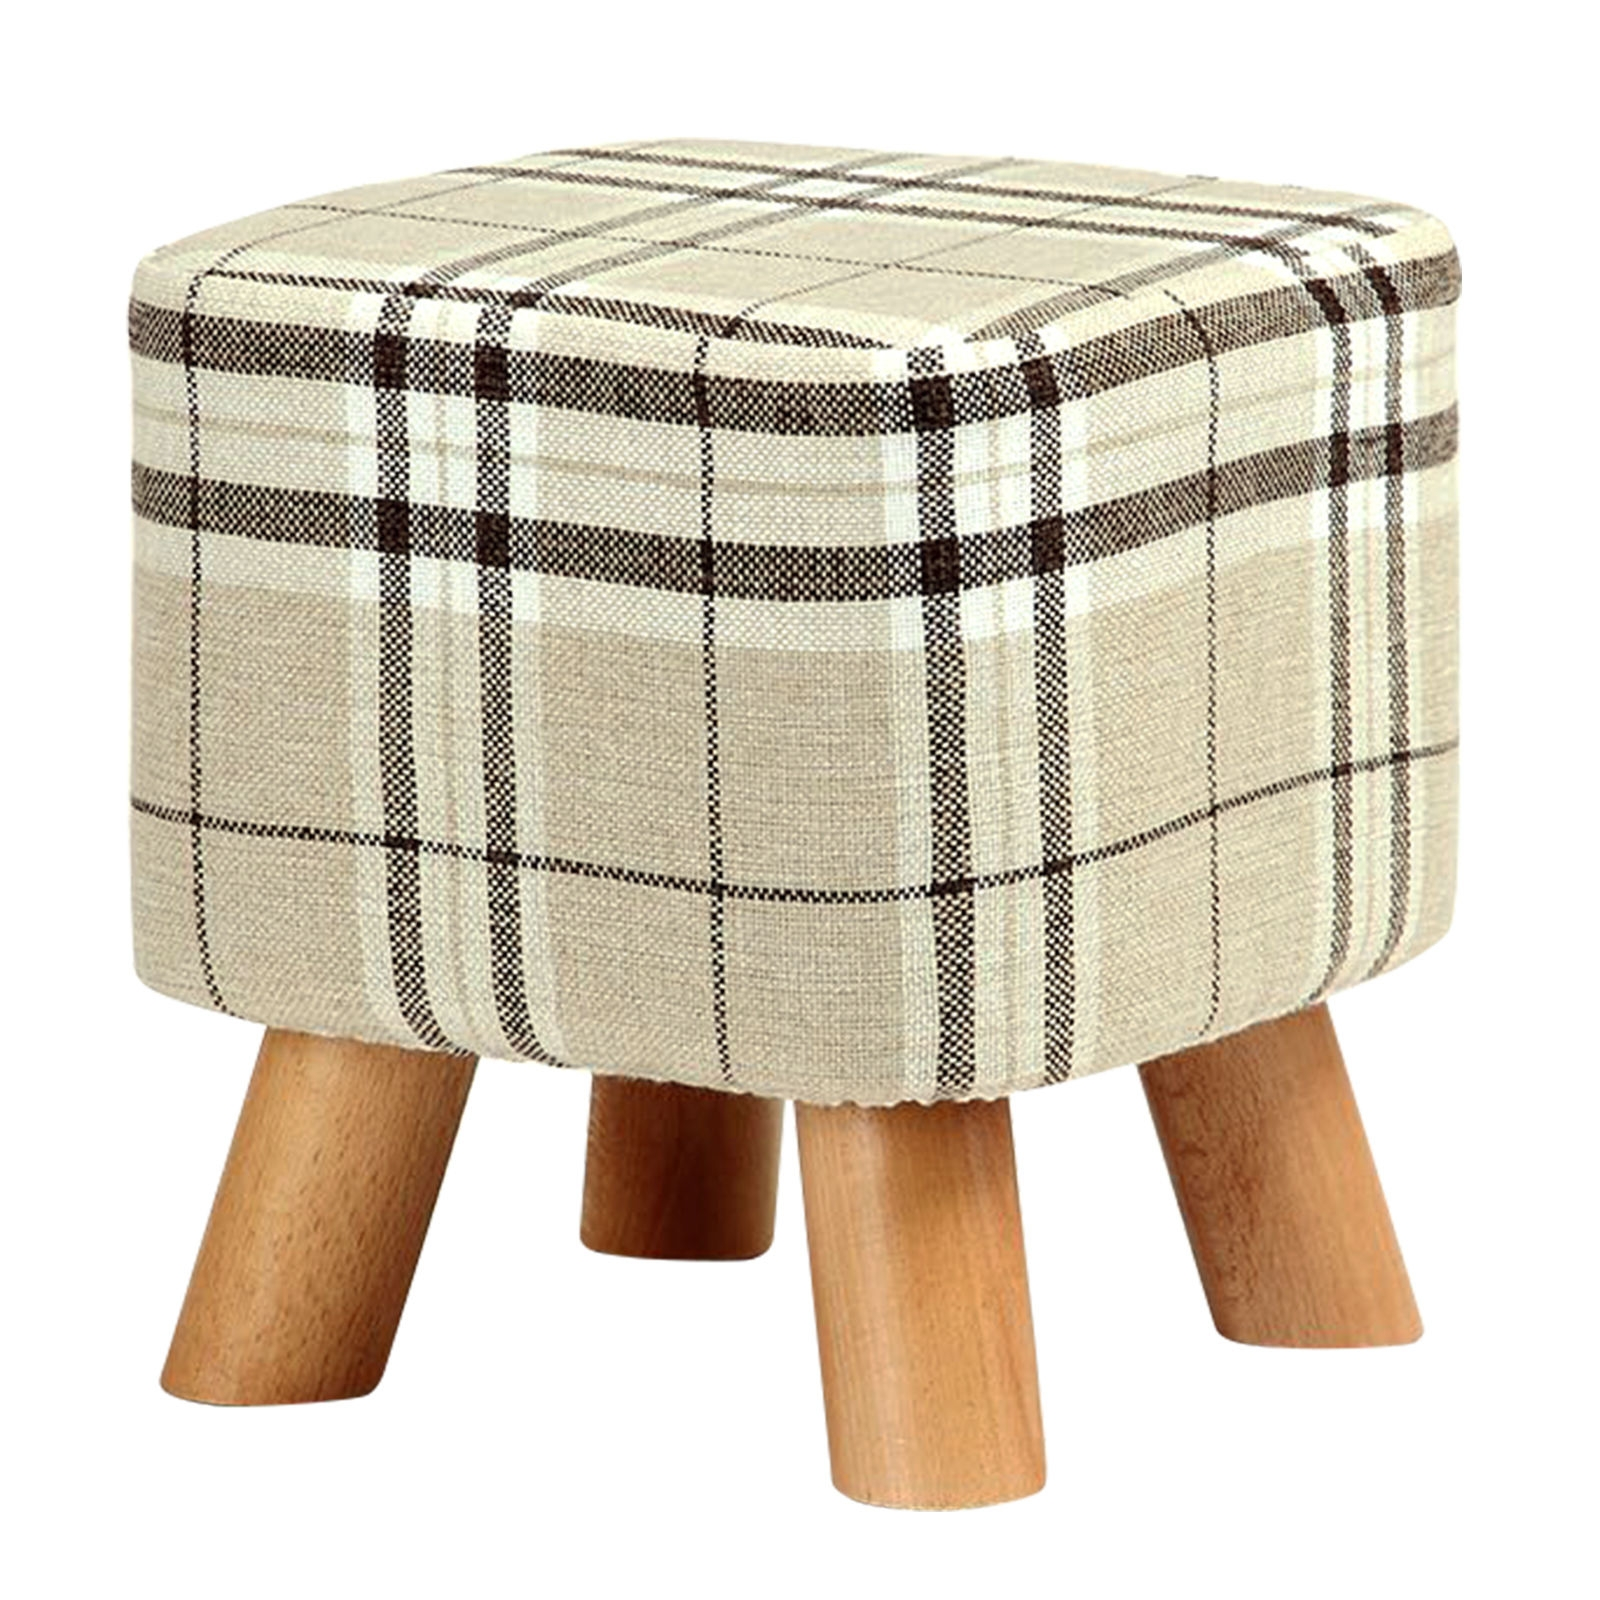 Online Get Cheap Modern Footstools Aliexpress Alibaba Group Intended For Cheap Footstools And Pouffes (Image 10 of 15)